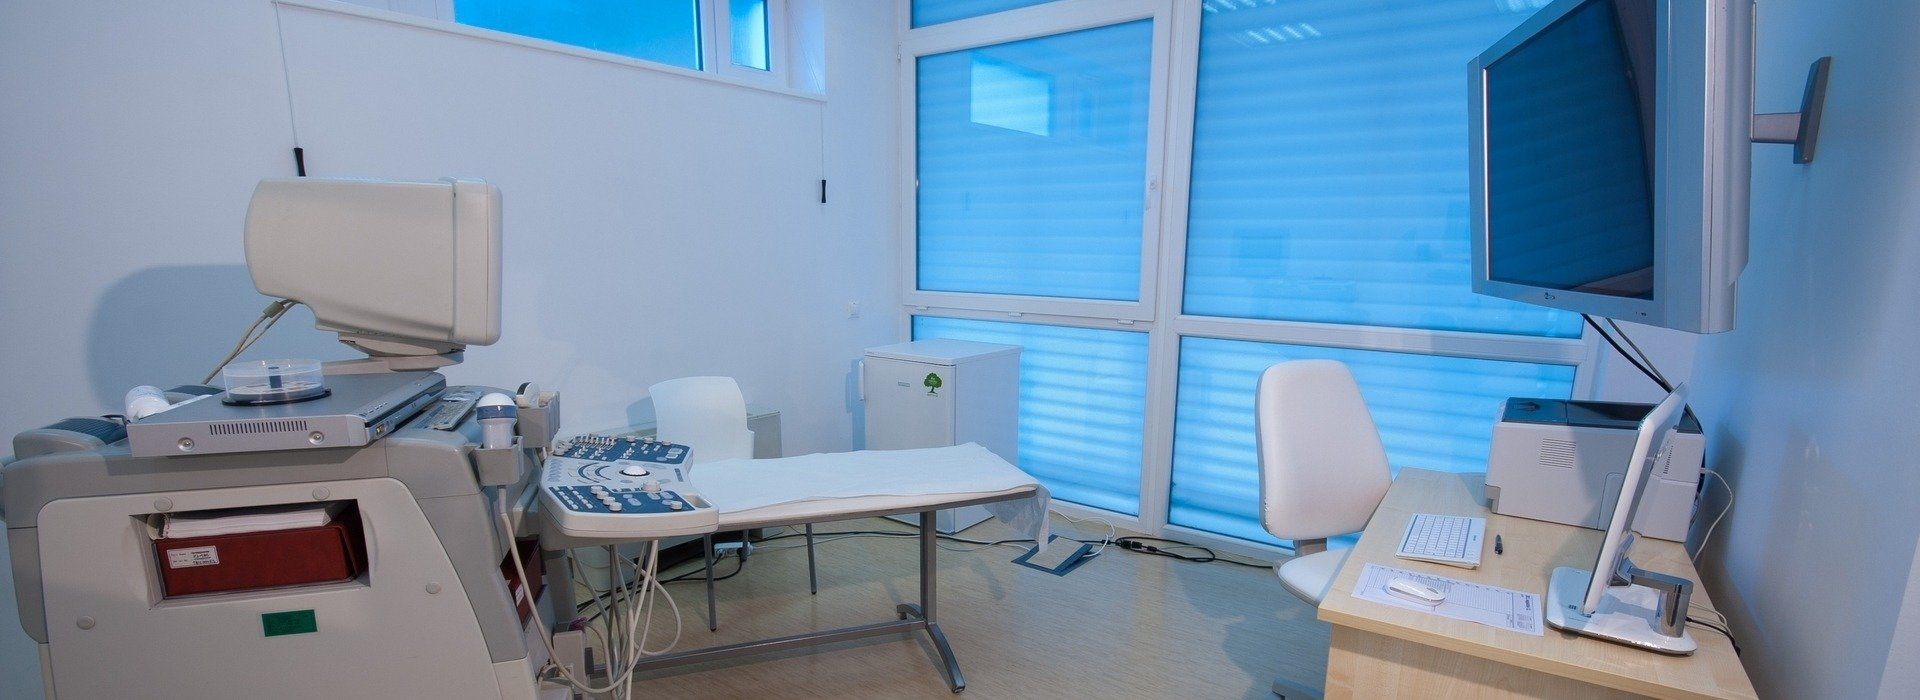 Ultrasound examination in Budapest - Diagnostic services in Budapest